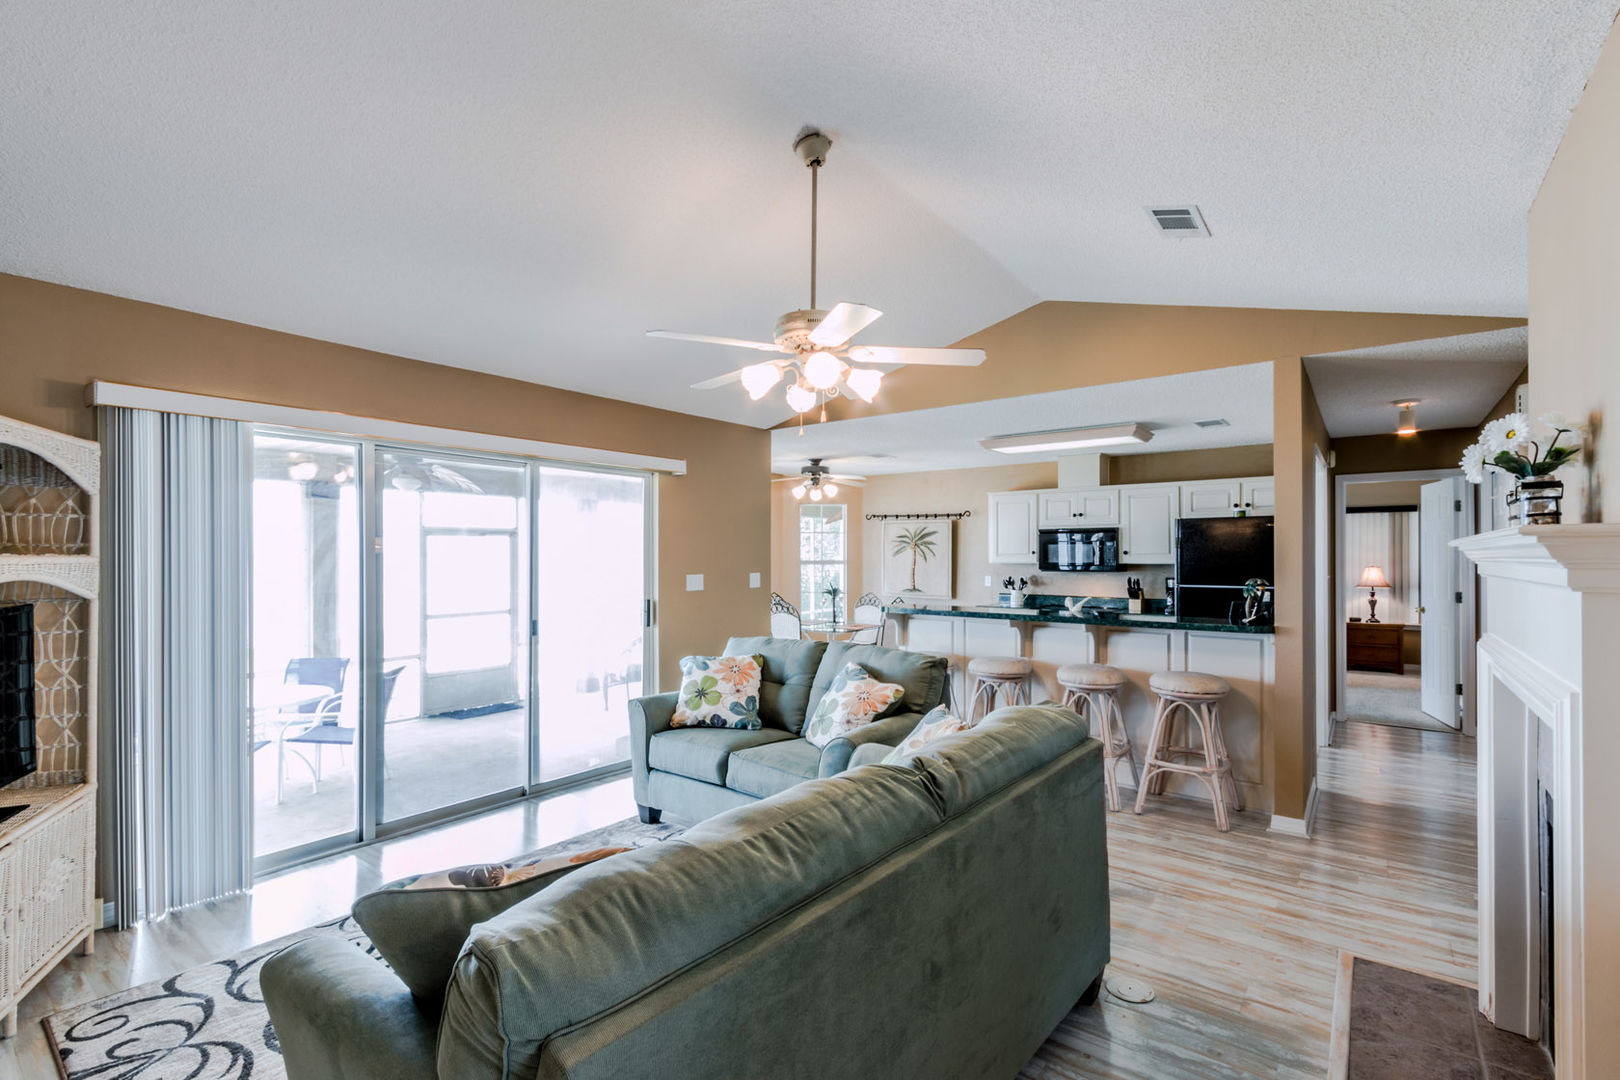 Spacious Living Area Overlooking The Bay, with couches and view of kitchen.